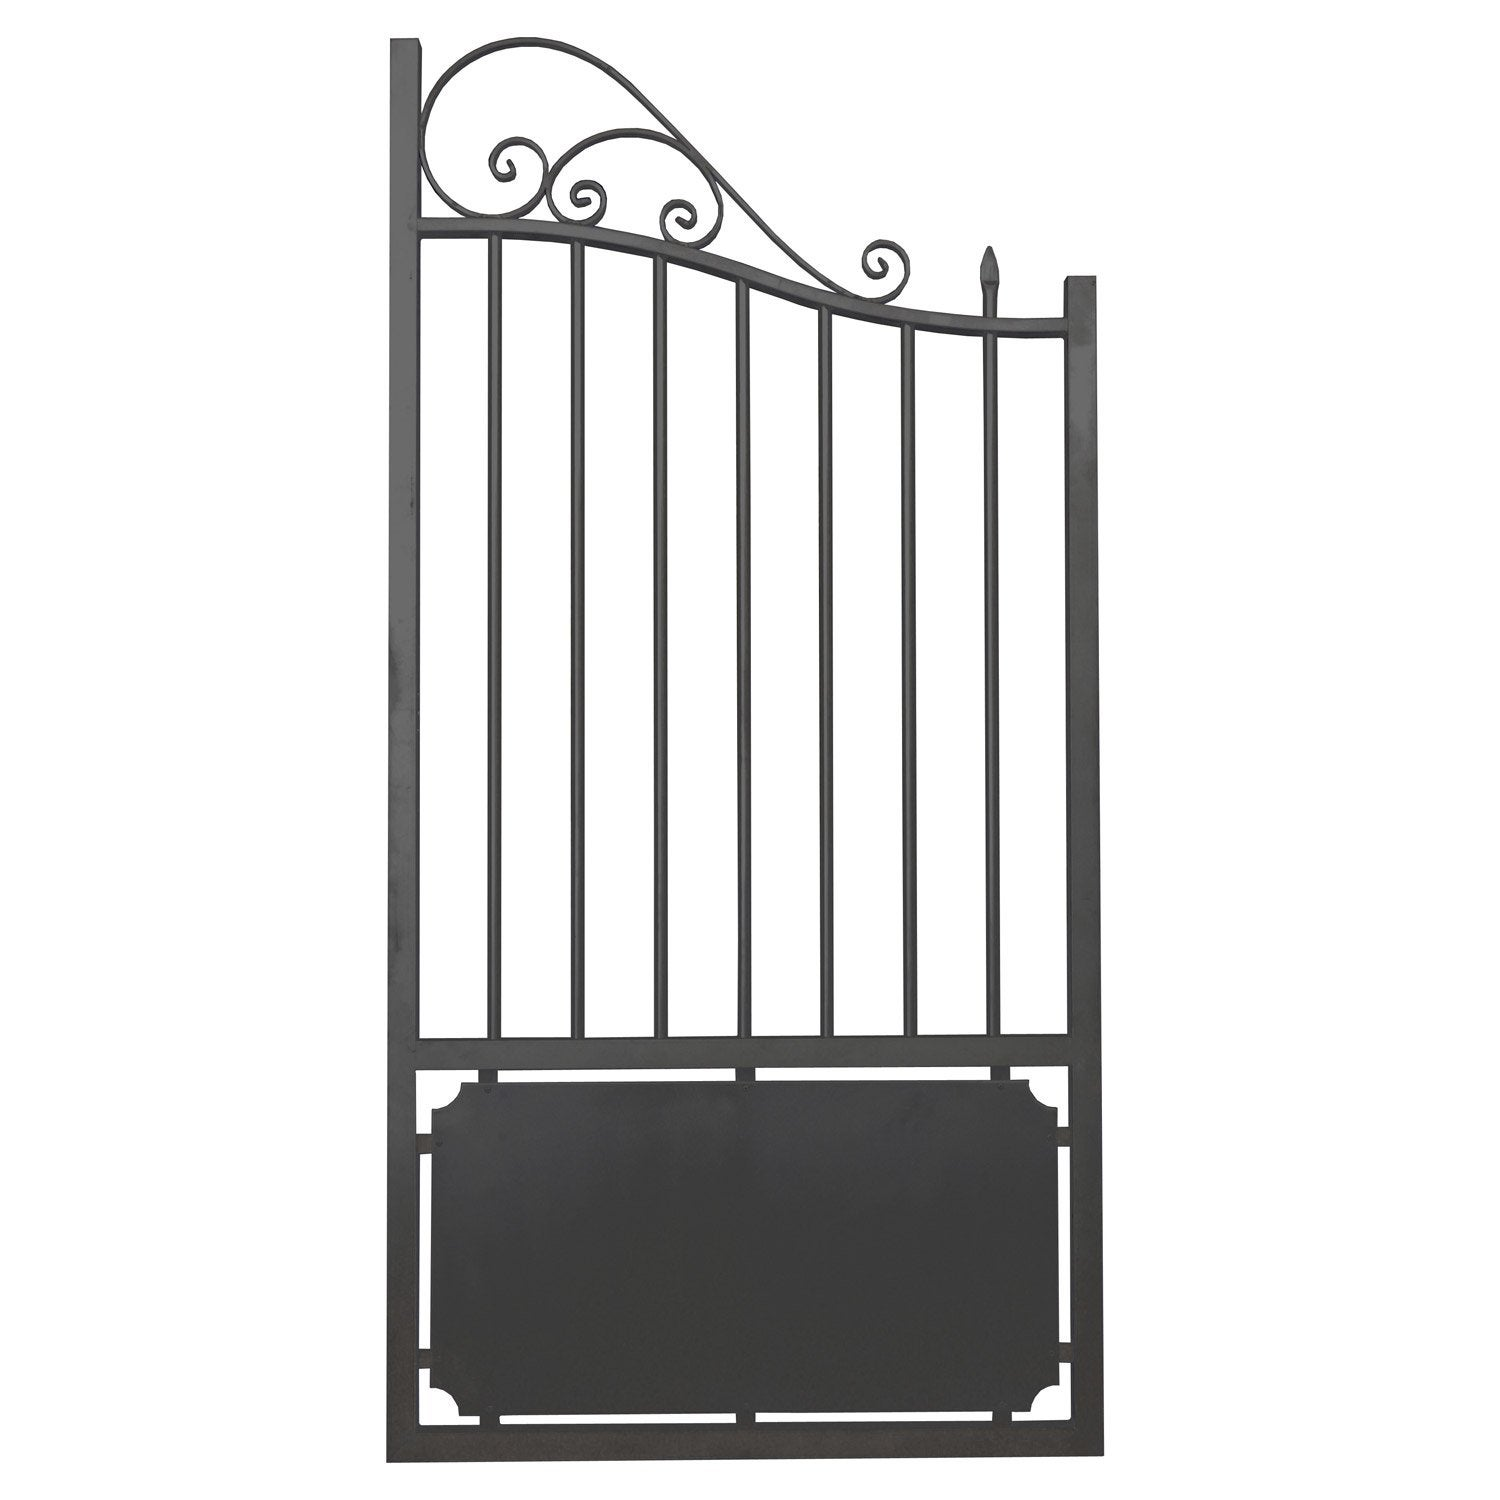 Portillon battant en aluminium matignon x cm for Portillon en alu